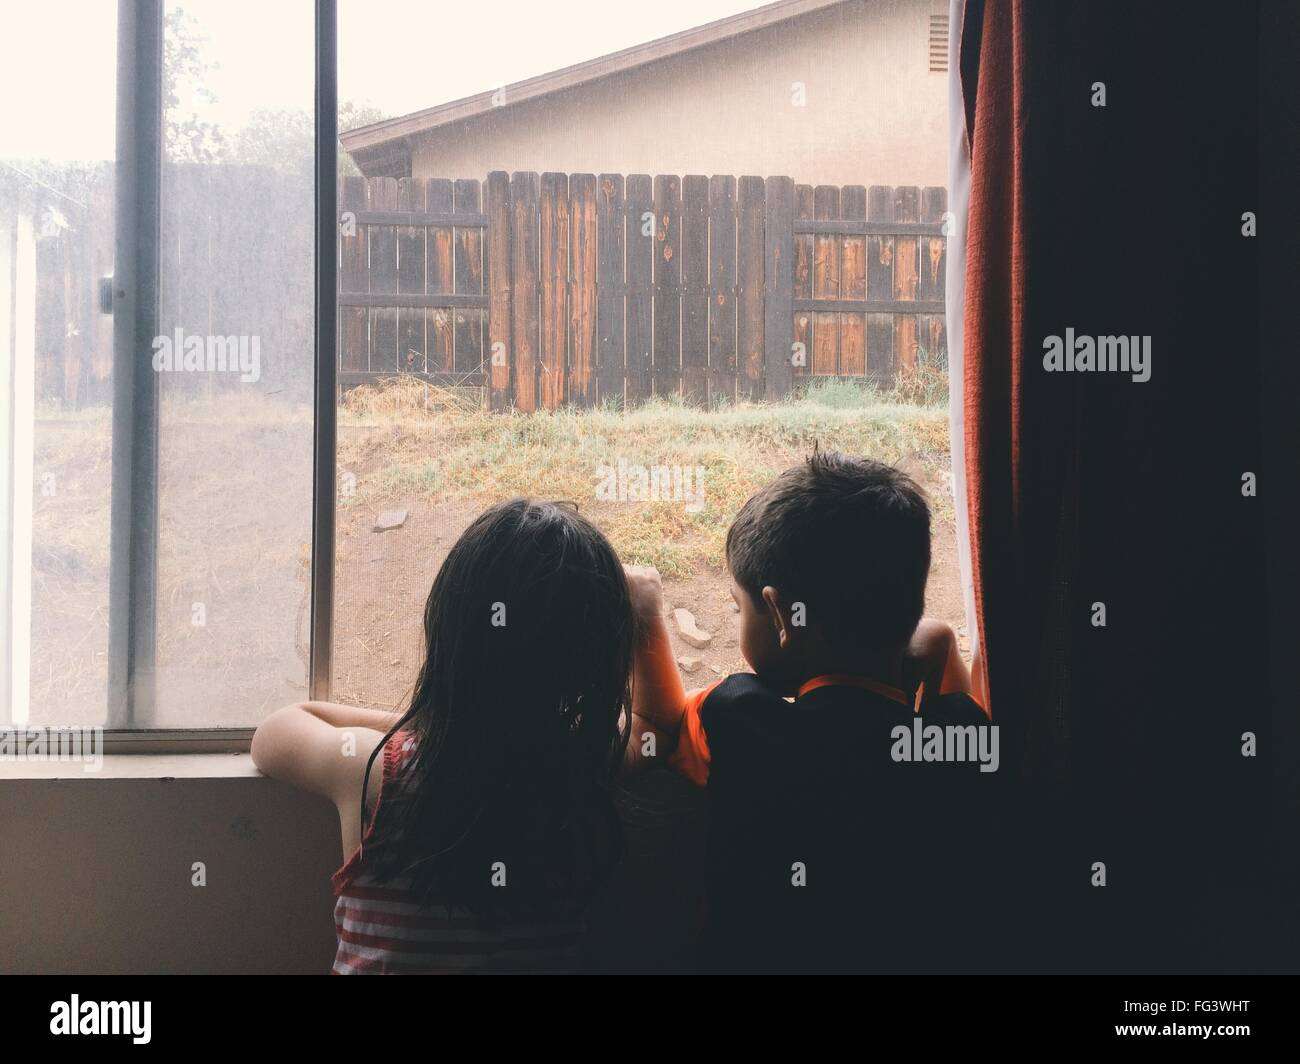 Rear View Of Siblings Looking Through Window At Home - Stock Image